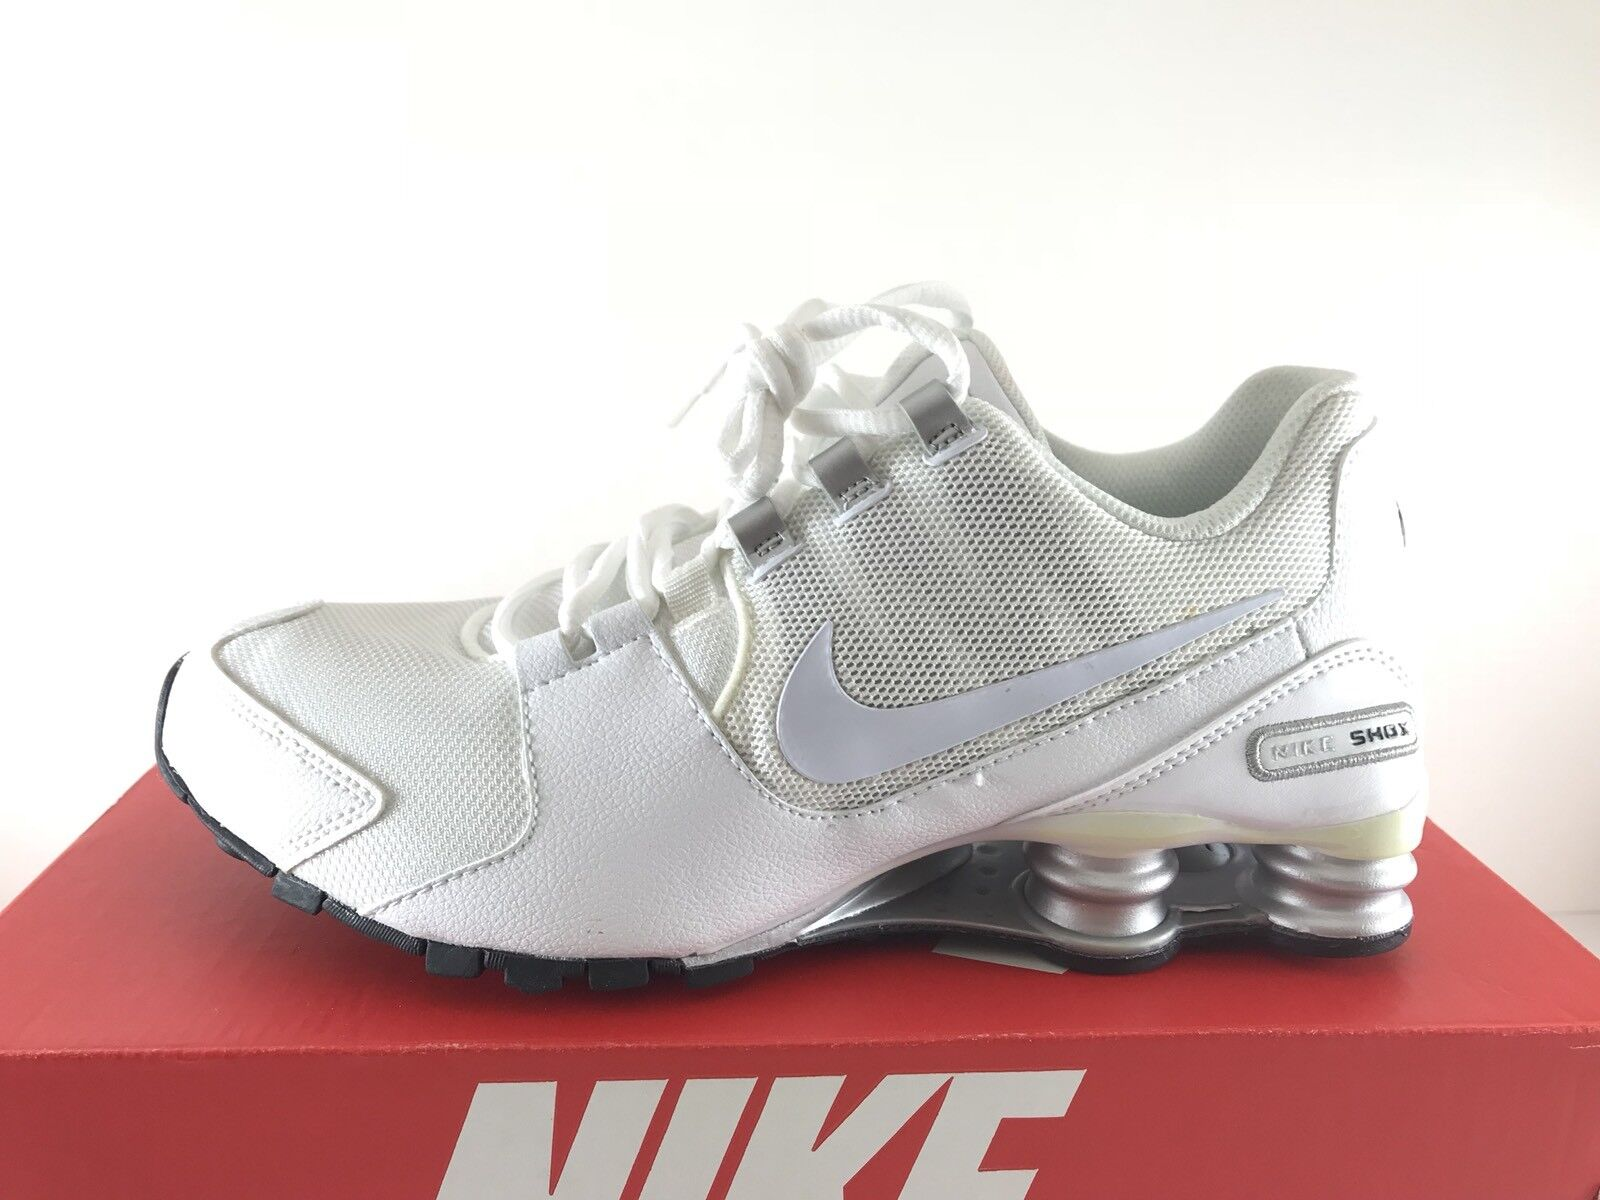 Nike Shox Avenue Running Shoes White Metallic Silver Black Comfortable Cheap and beautiful fashion